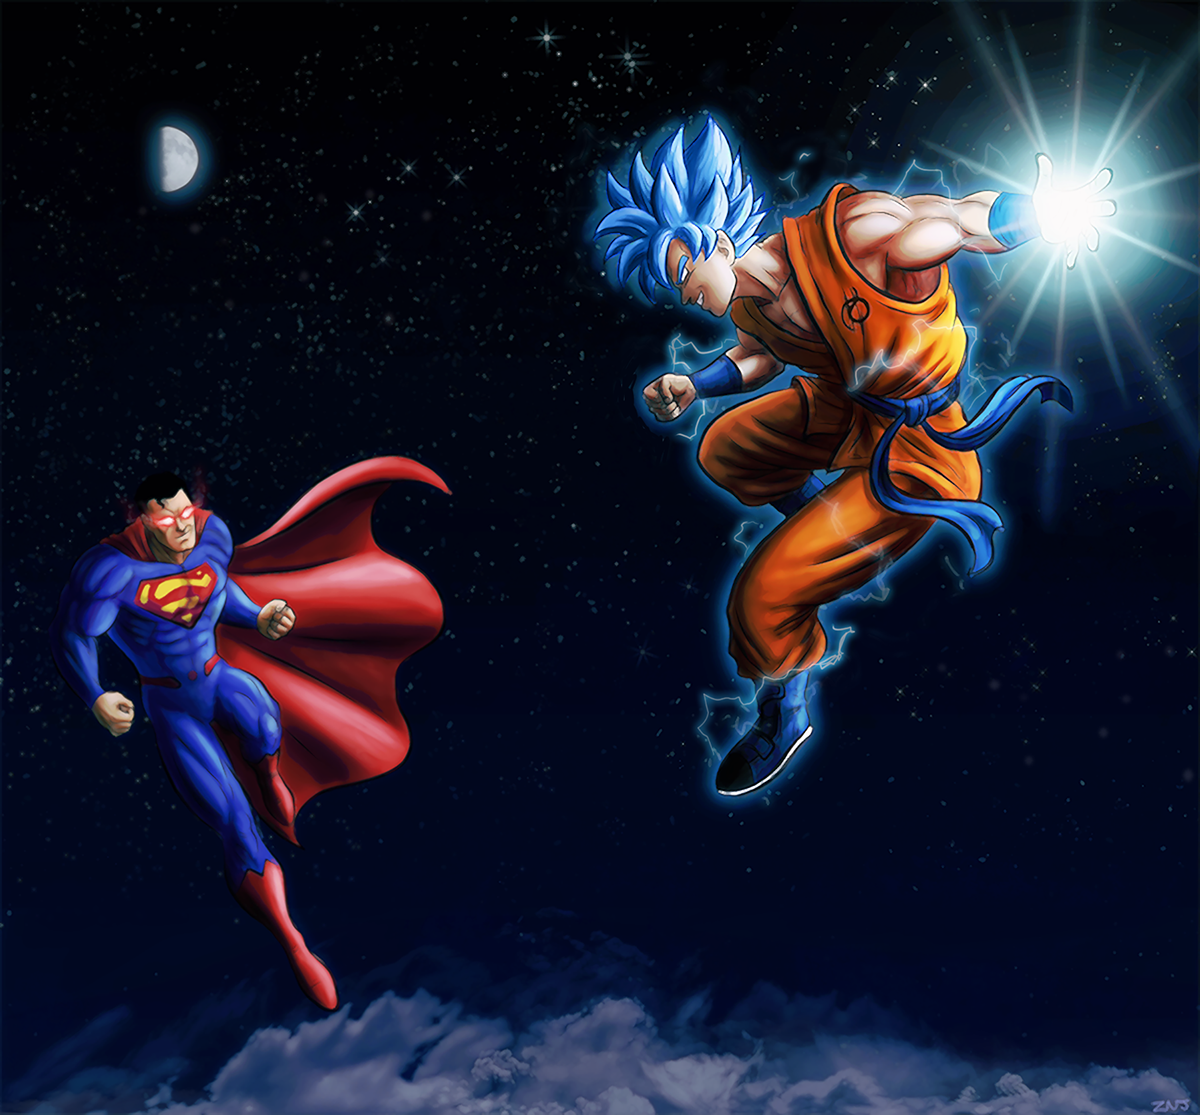 Goku vs Superman - Sparring Buddies by zachjacobs on ...